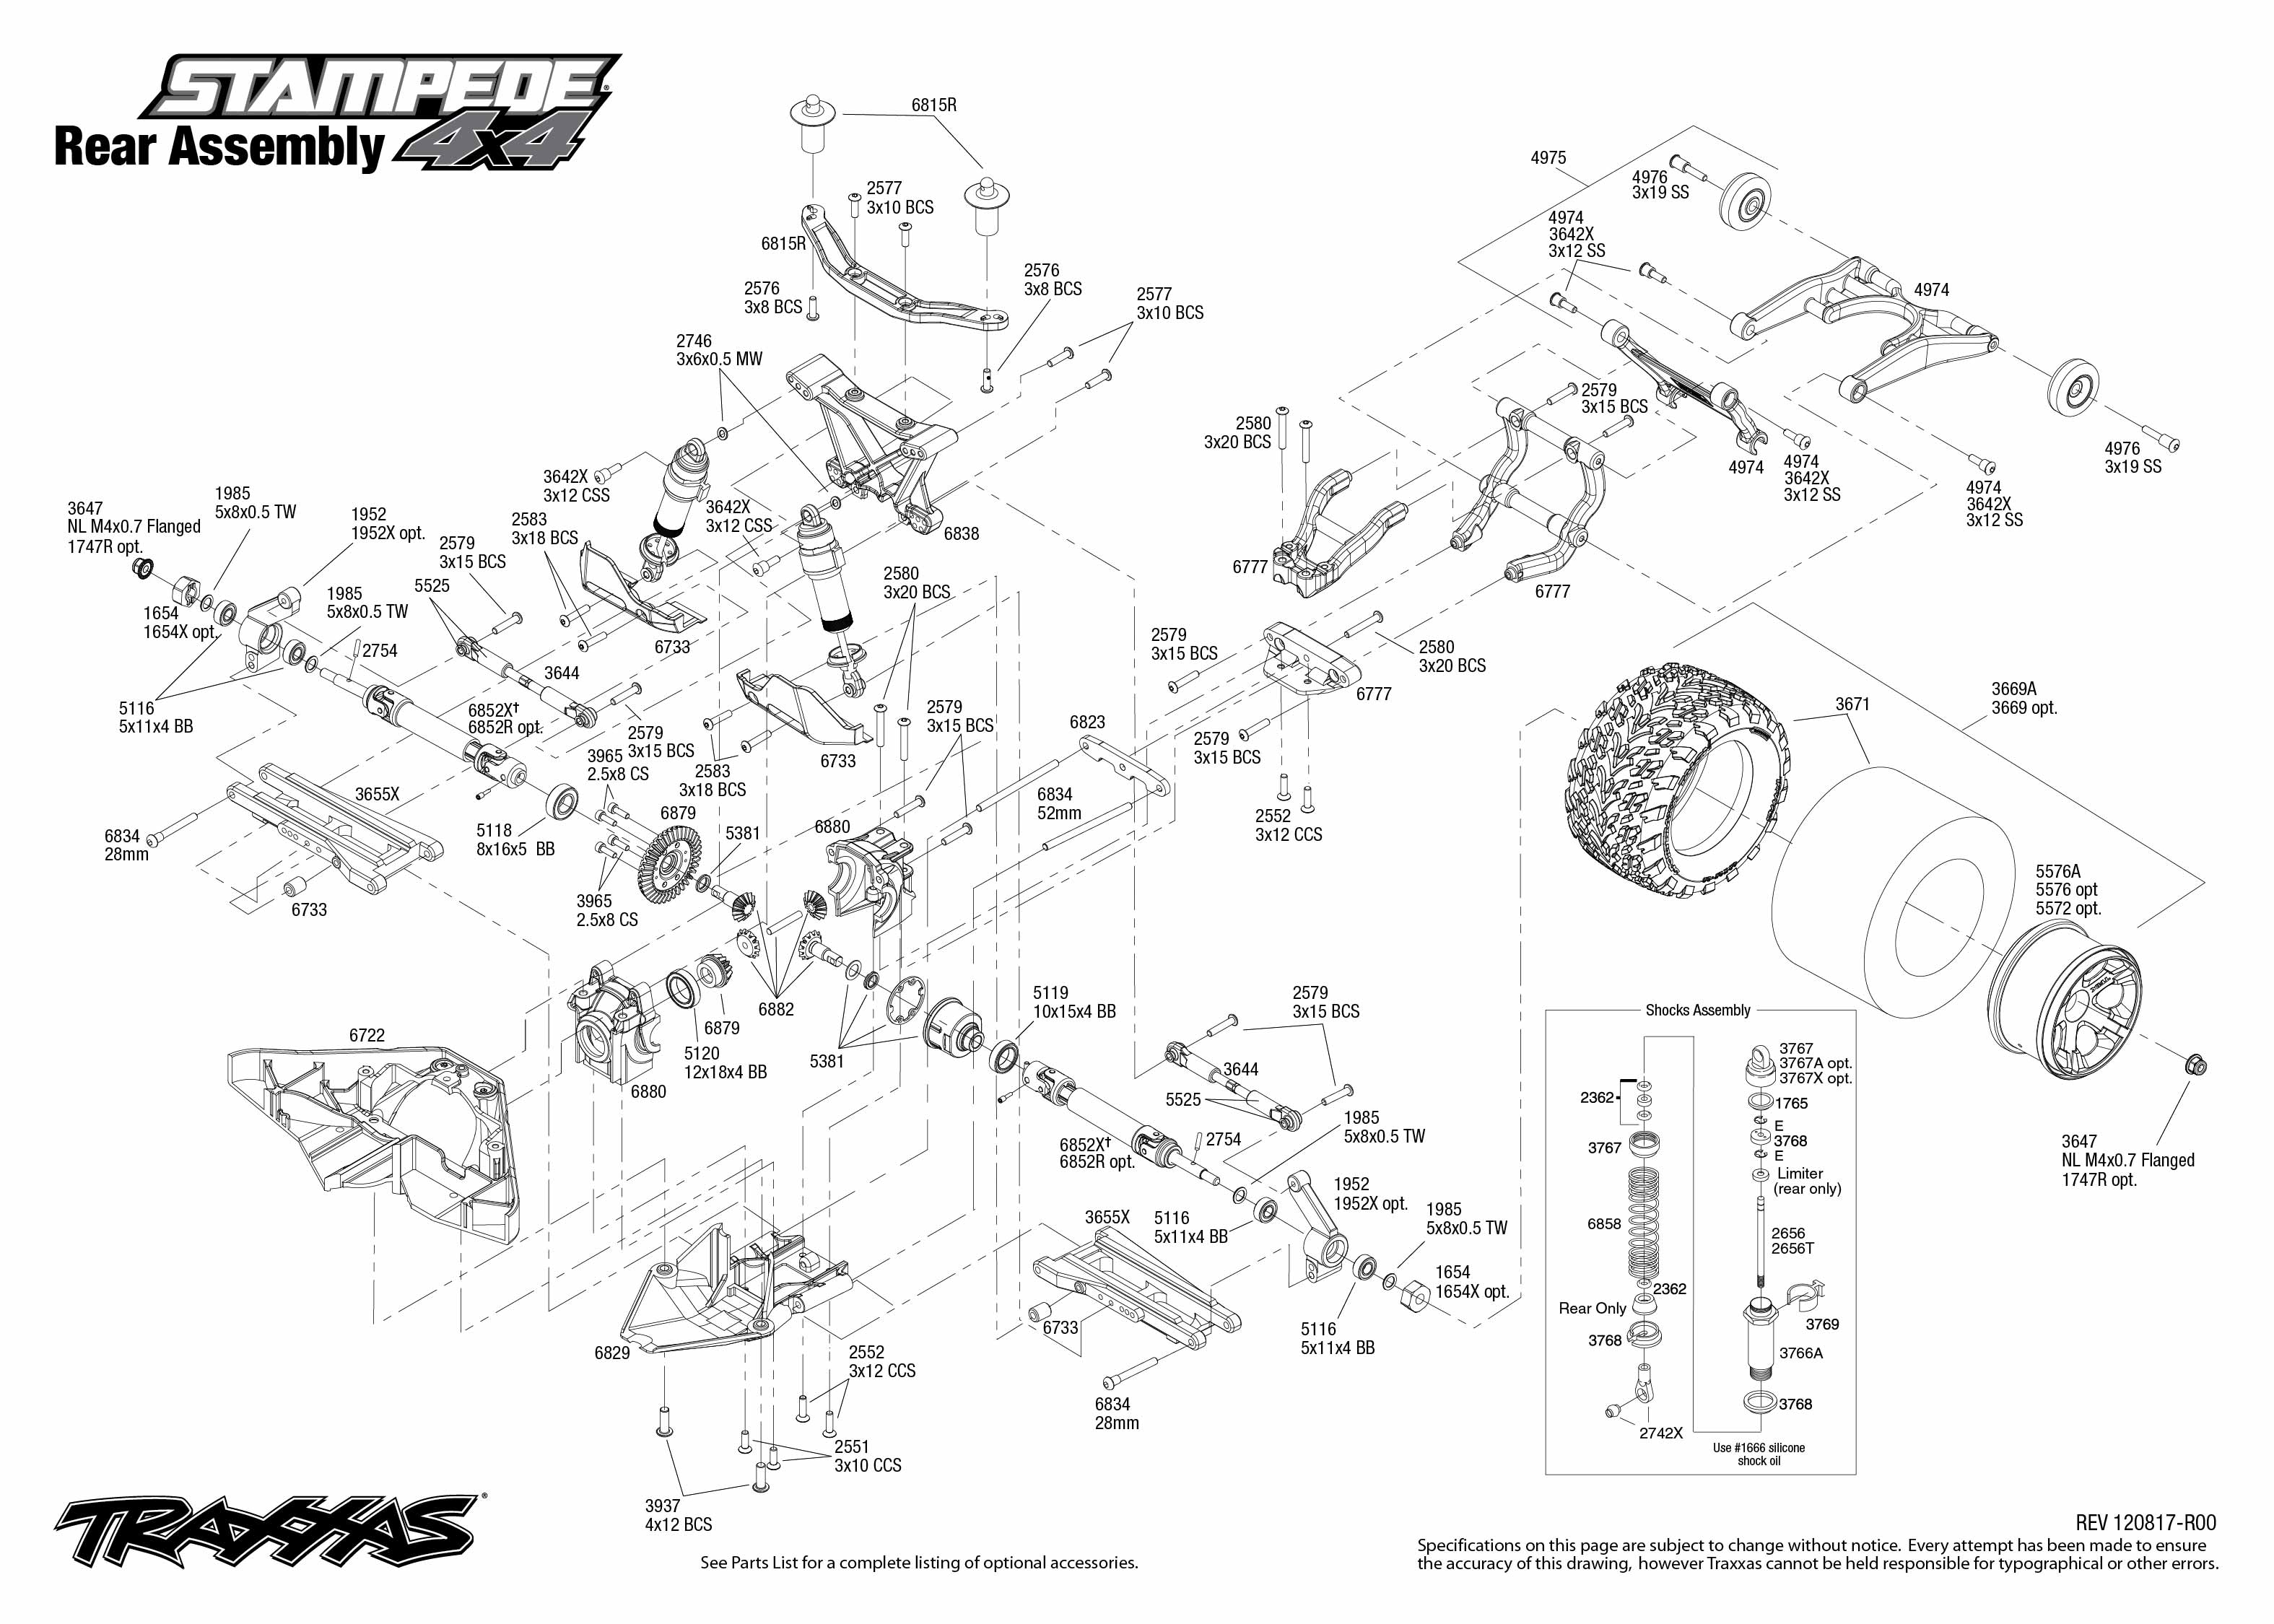 Extraordinary traxxas rustler parts diagram ideas best image slash 4x4 rear diagram wiring diagram and engine diagram contemporary traxxas pooptronica Images